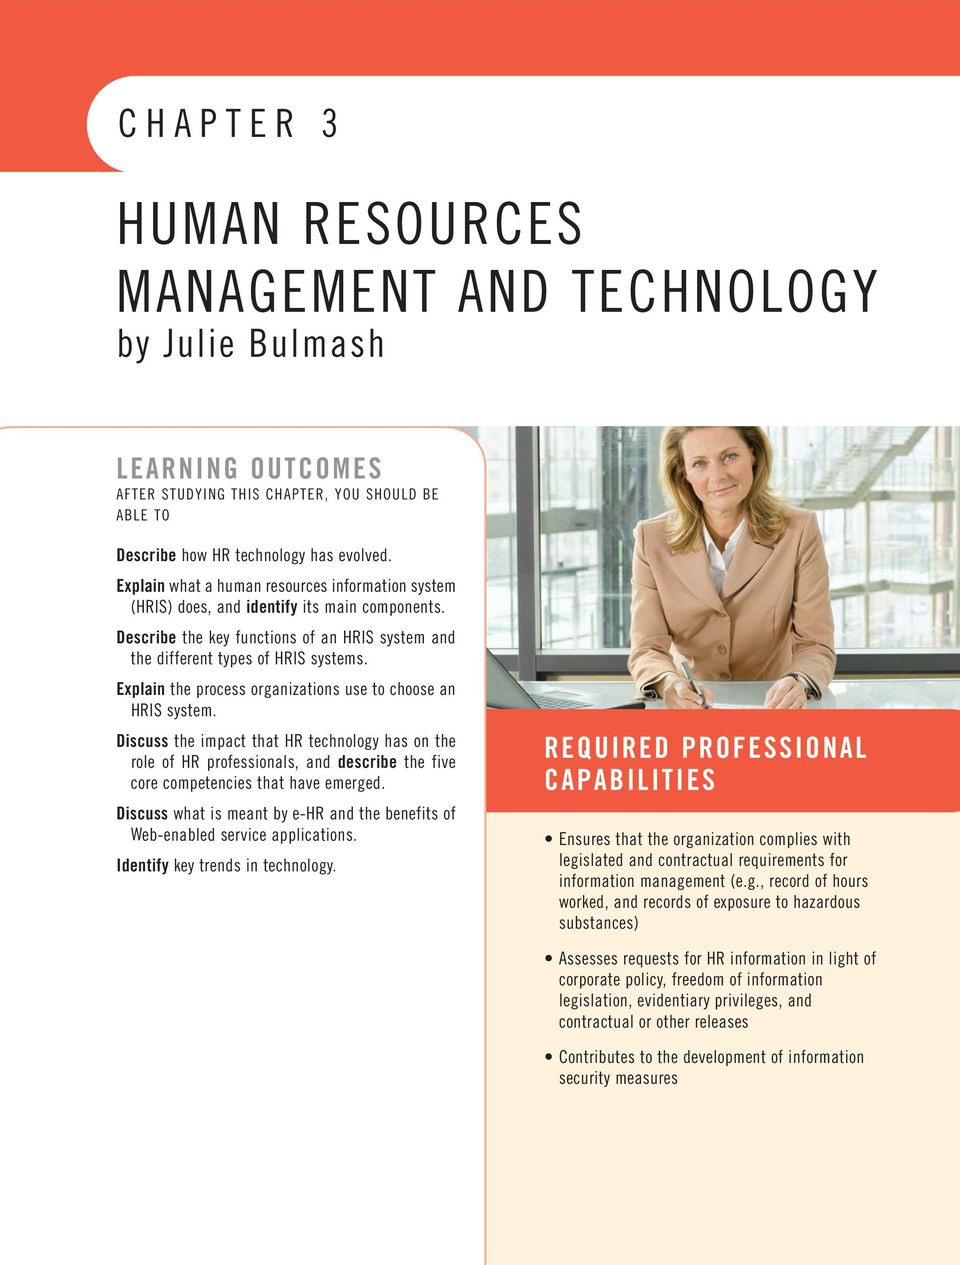 Explain the process organizations use to choose an HRIS system. Discuss the impact that HR technology has on the role of HR professionals, and describe the five core competencies that have emerged.